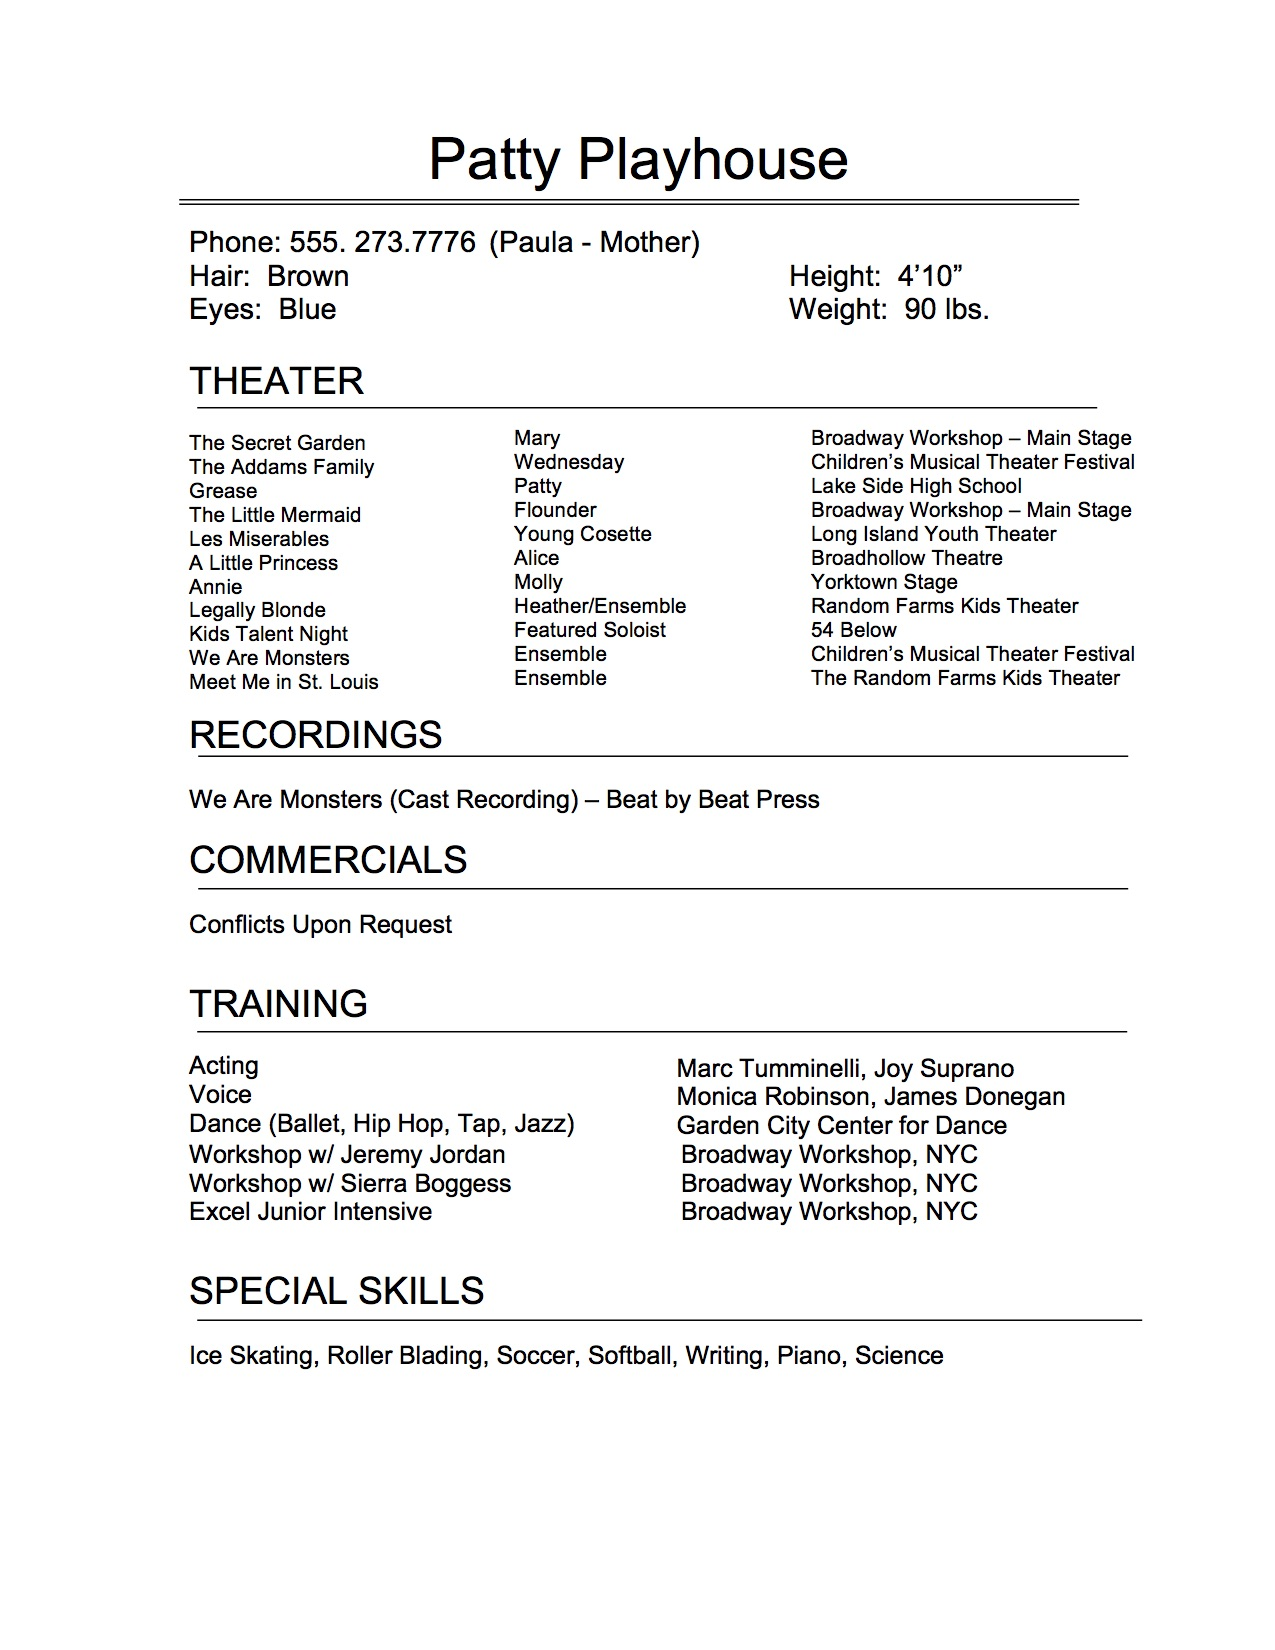 Resume - The wingman to the headshot has finally left the building as well. You may have guessed it, most casting directors aren't asking for resumes either. At this point I've been lucky to go on hundreds of auditions, and casting has reviewed my resume with me maybe 10 times over the span of five years. Subsequently, asked me where I went to college to study and spend $50,000 a year to get my degree, only 3 times!! 😢The Takeaway: Make sure you keep your resume updated so that if casting directors or producers ask you about what you've done you can shoot off some past credits. It is also very important that you update your resume after every job on sites like Actor's Access, Casting Frontier, and IMDb. Once again, you don't need to spend money printing hundreds of resumes, keep a few in the car and that's it.